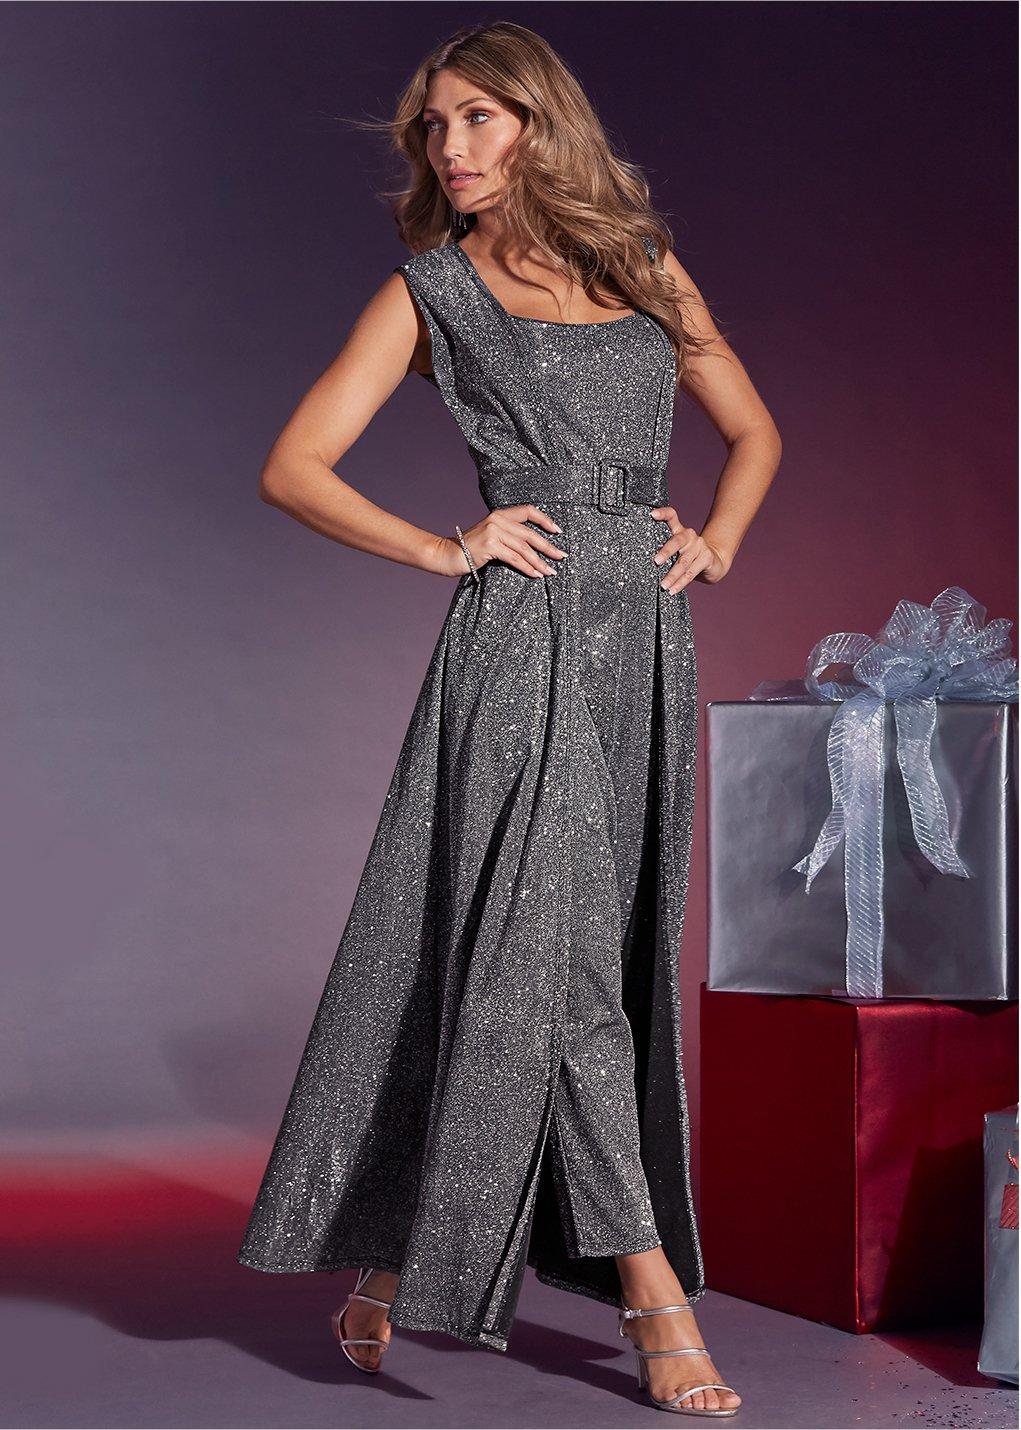 model wearing a sparkly belted jumpsuit in gray